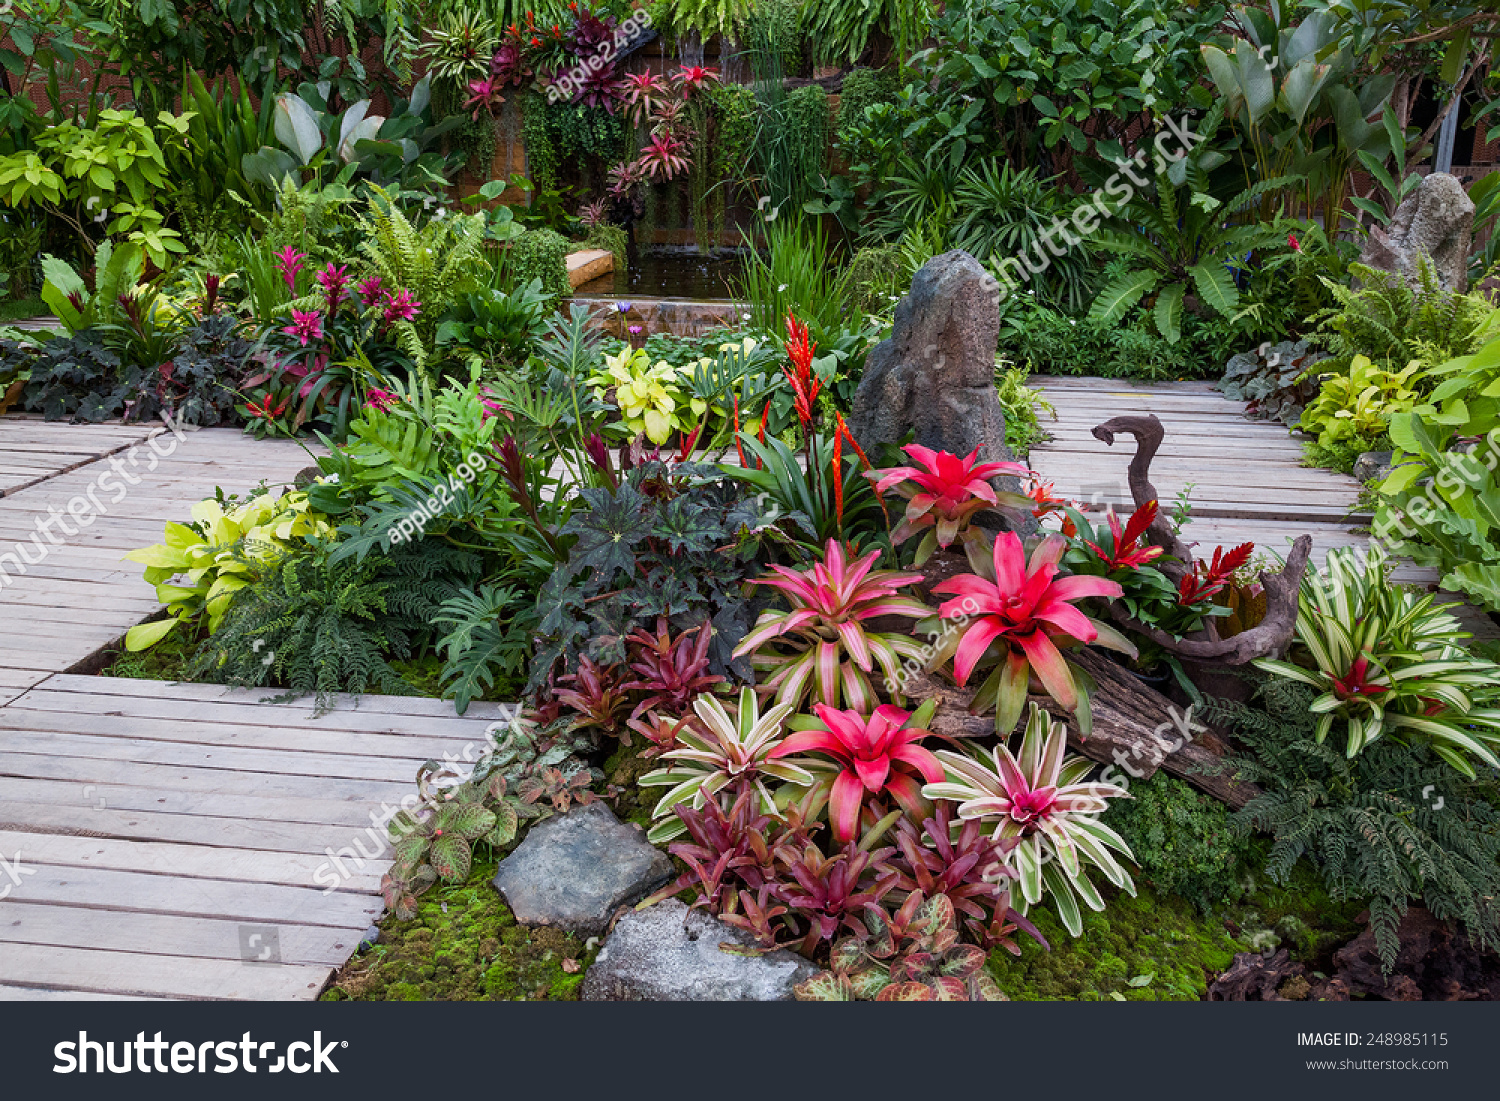 Garden Decorate Stock Photo (Royalty Free) 248985115 - Shutterstock